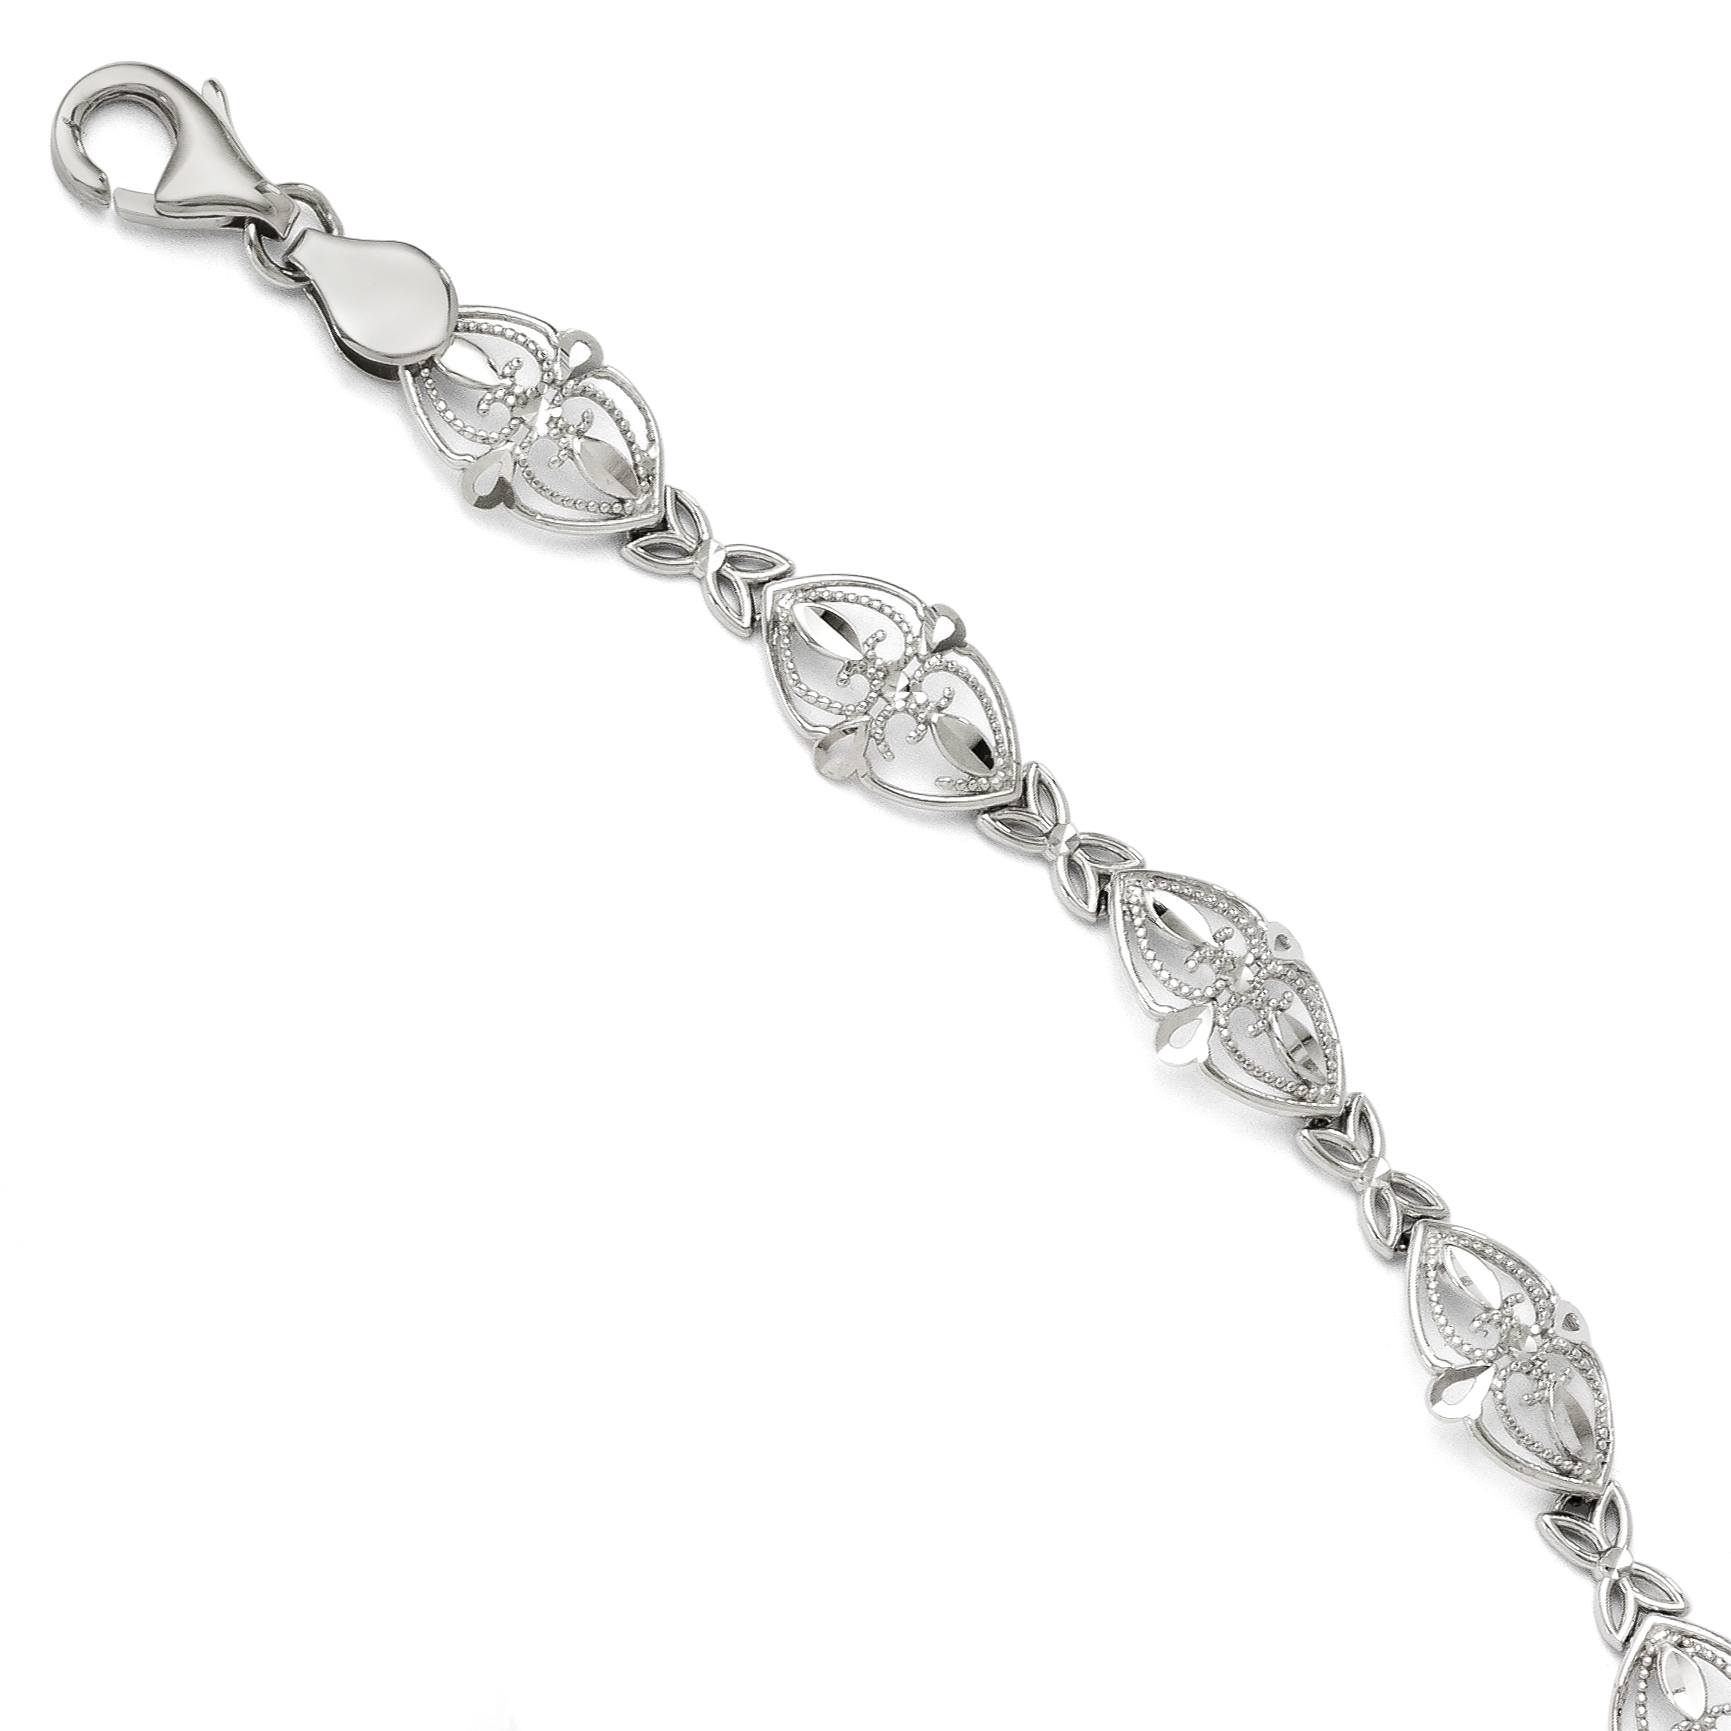 14k White Gold Bracelet 7 Inch Fancy Fine Jewelry Gifts For Women For Her - image 2 of 2